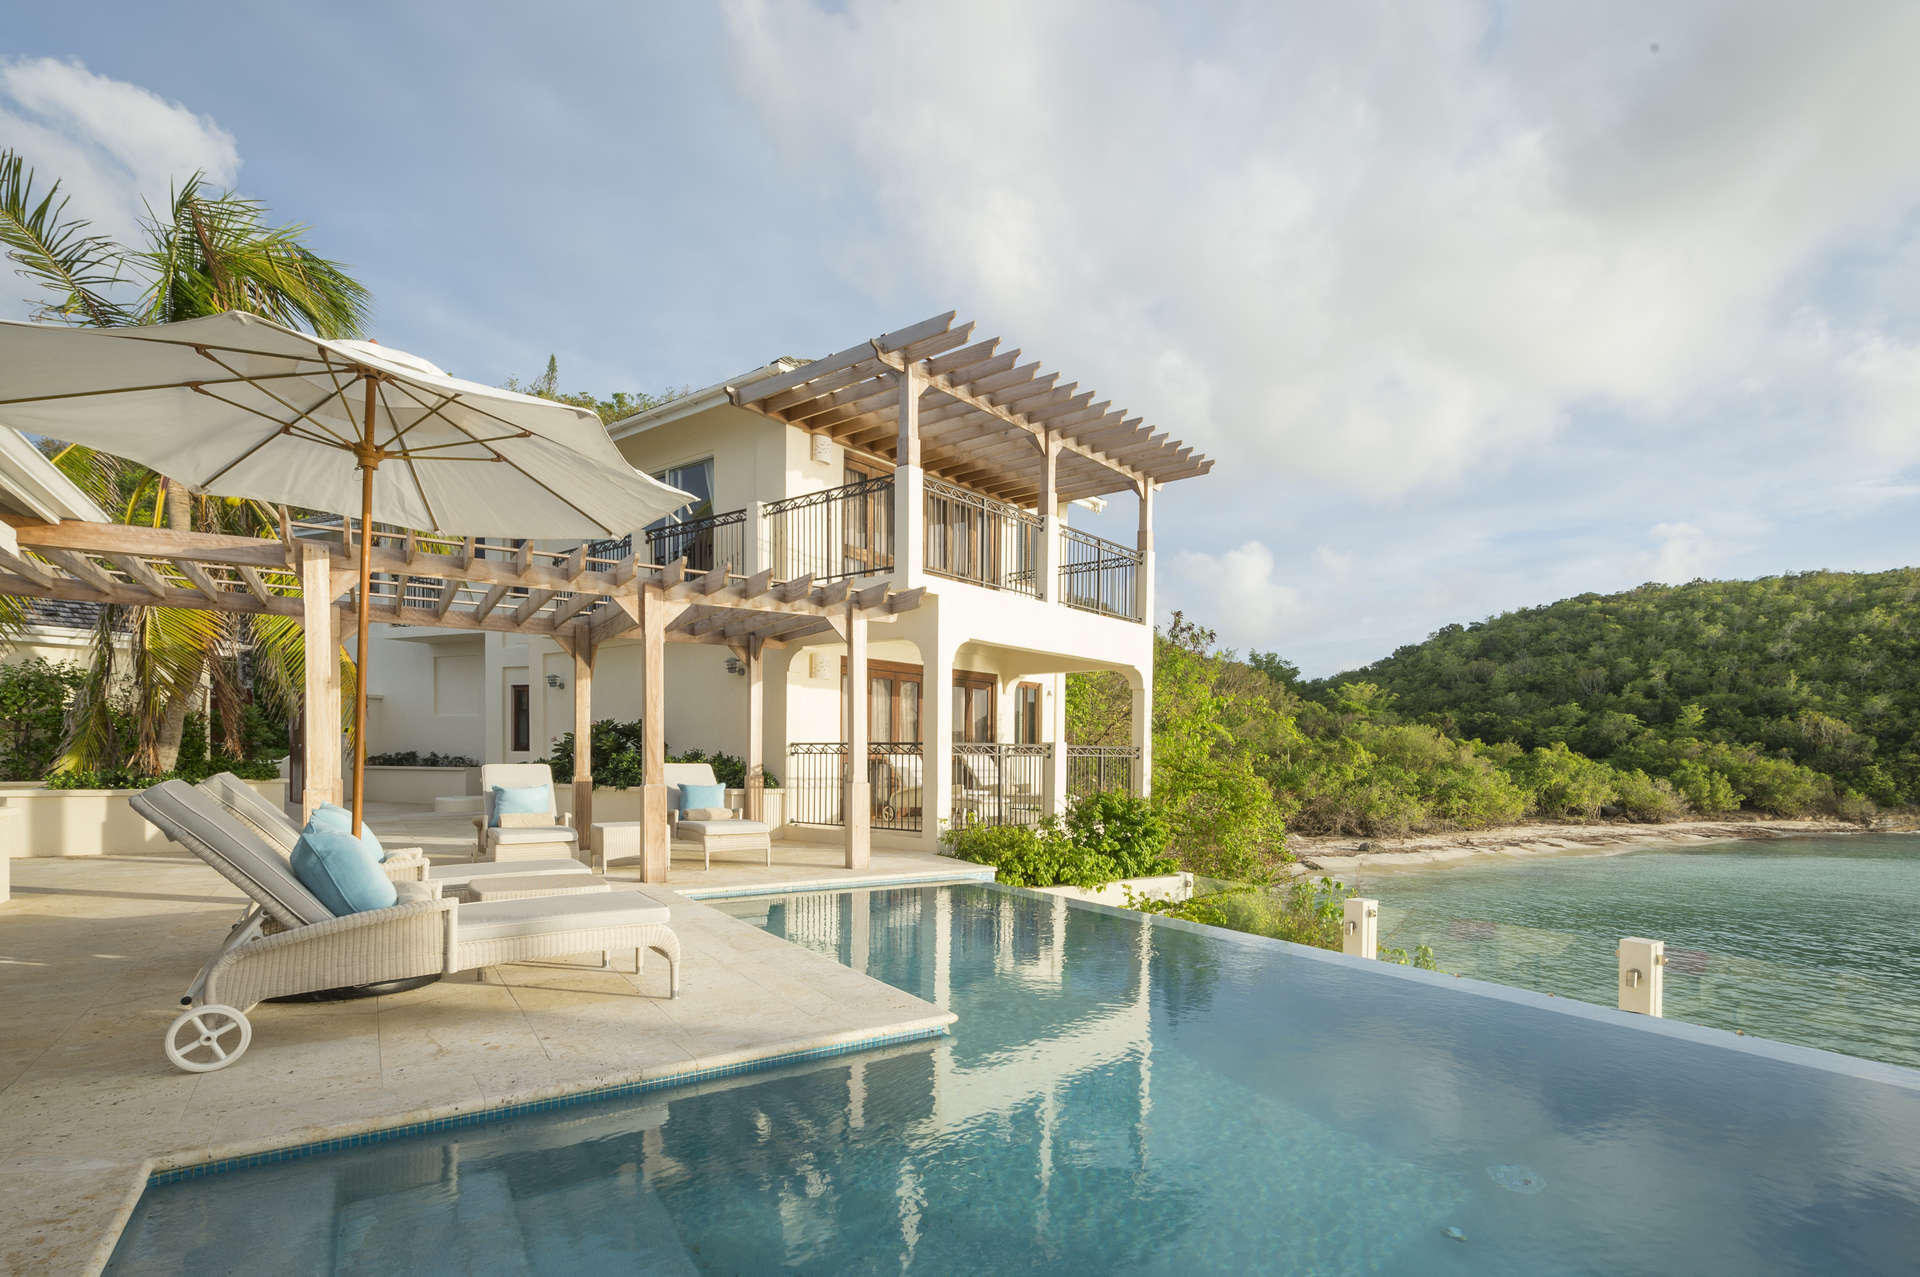 Luxury villa rentals caribbean - Antigua - Blue waters resort and spa - No location 4 - Rock Cottage - Image 1/8